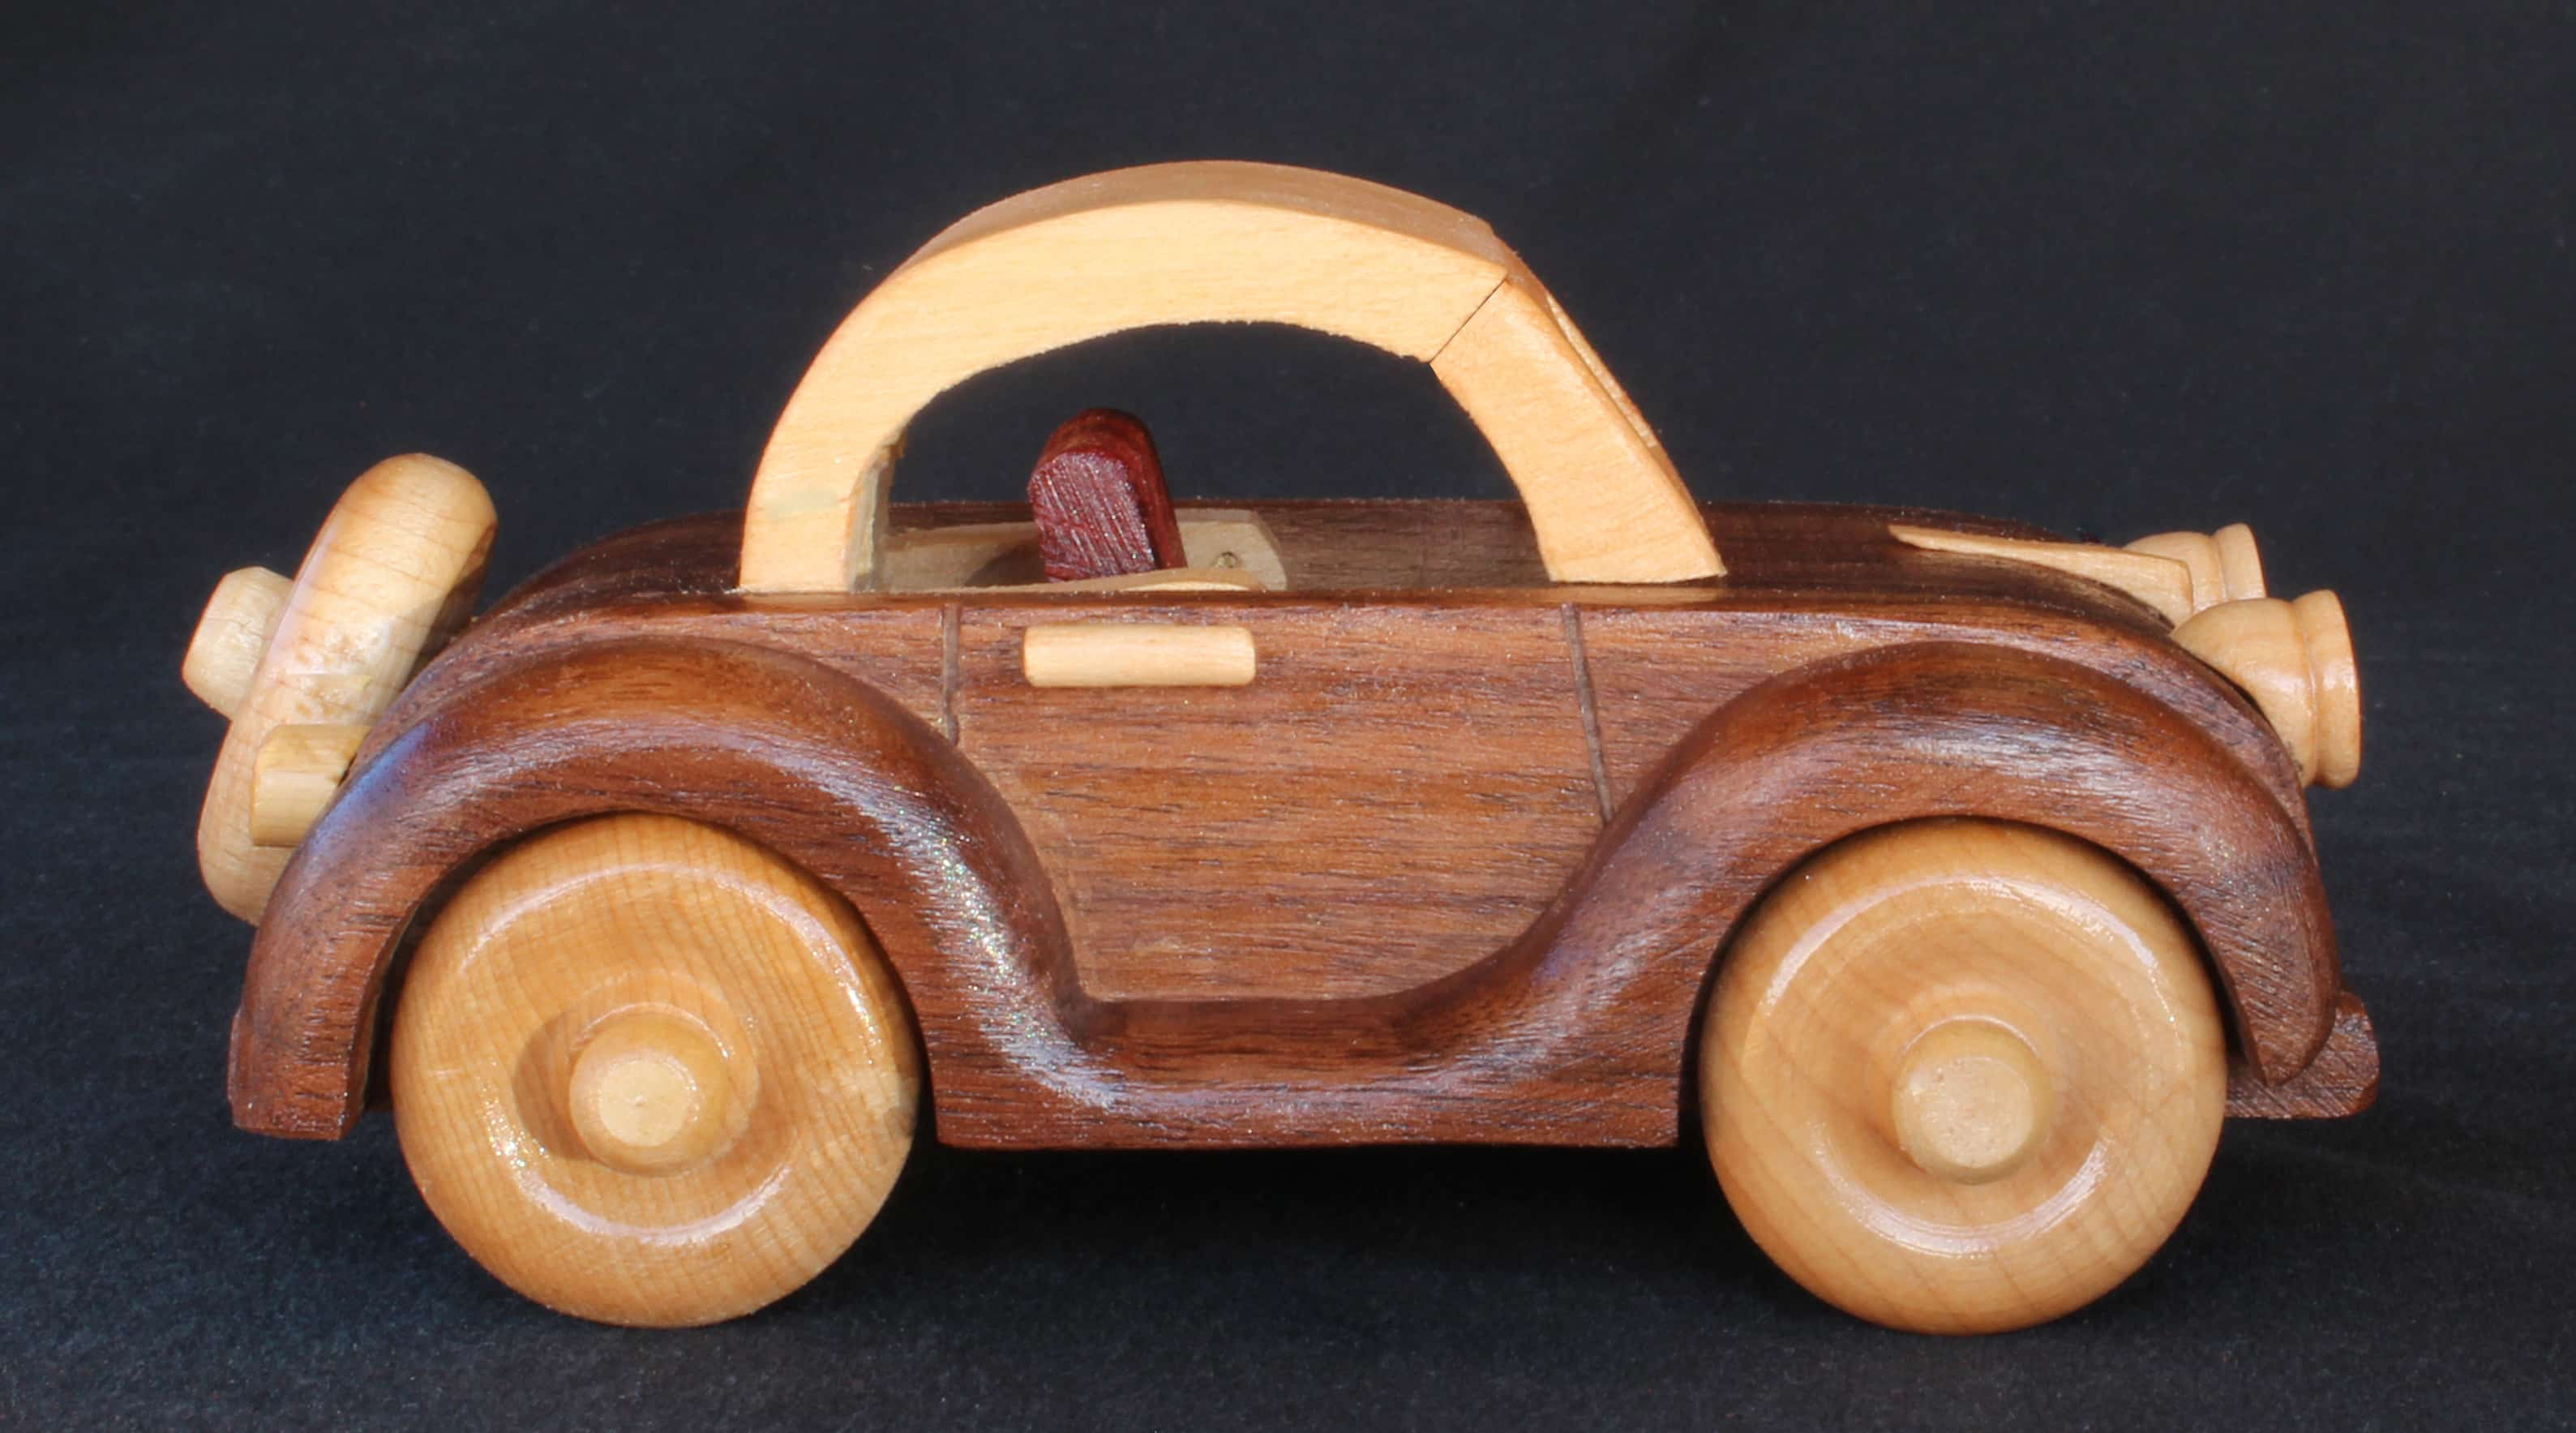 Vehicle from the Plump'N'Tuff wood plan set